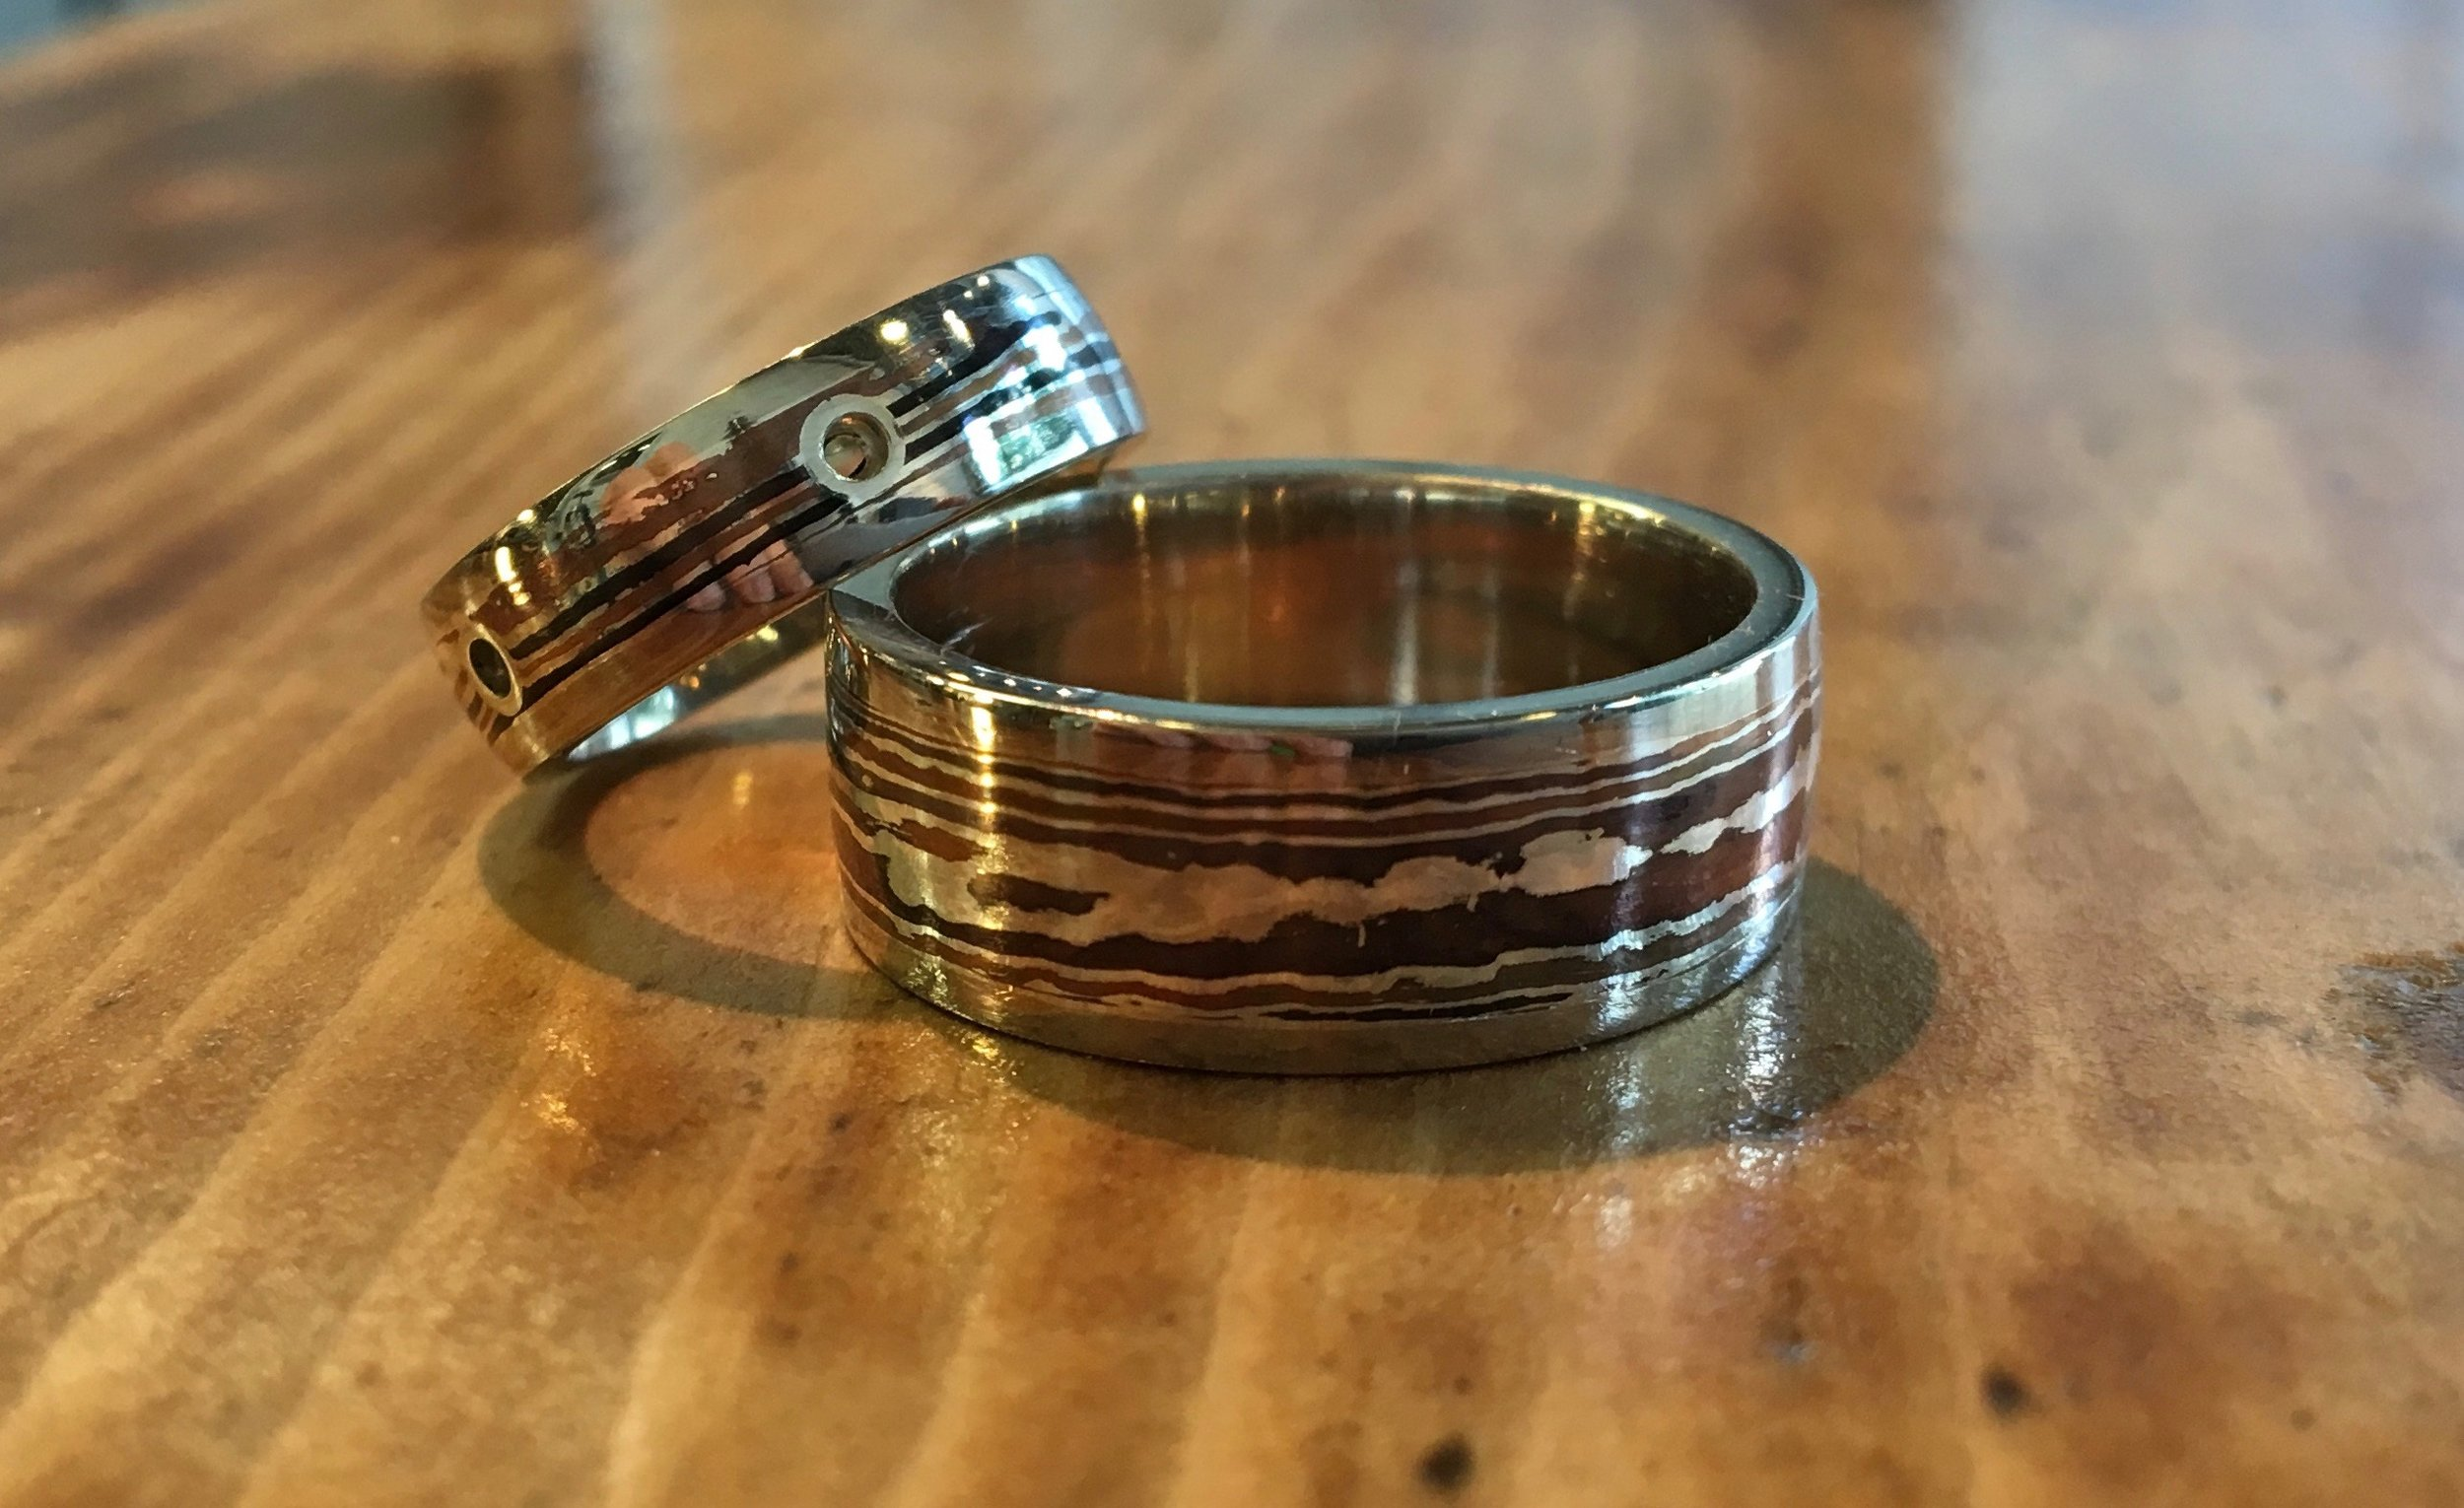 After polishing I added the chemical patina that gives these rings their distinctive look...